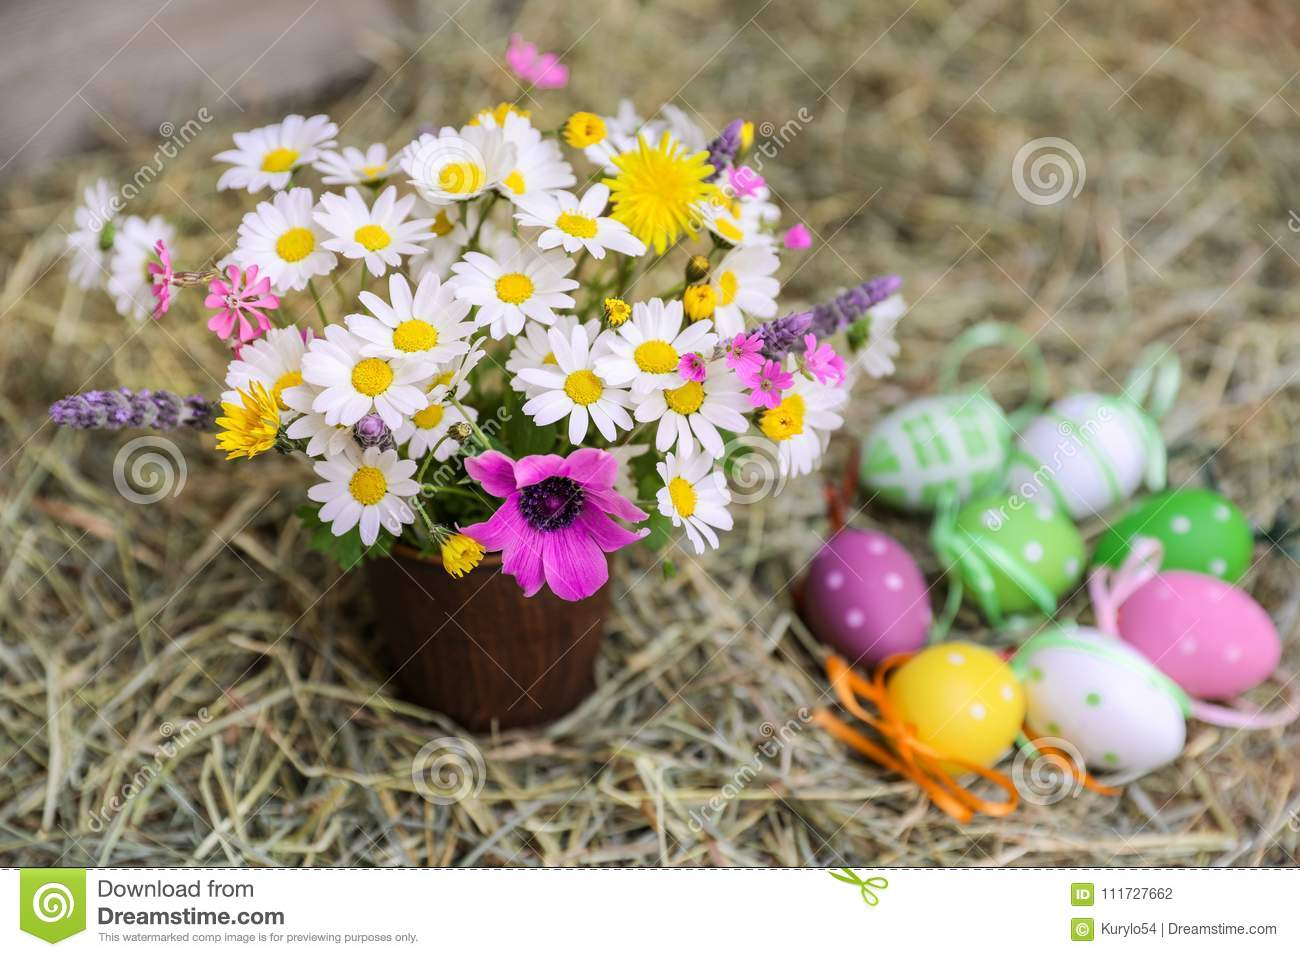 A Bouquet Of Spring Flowers And Decorated Easter Eggs On The Hay